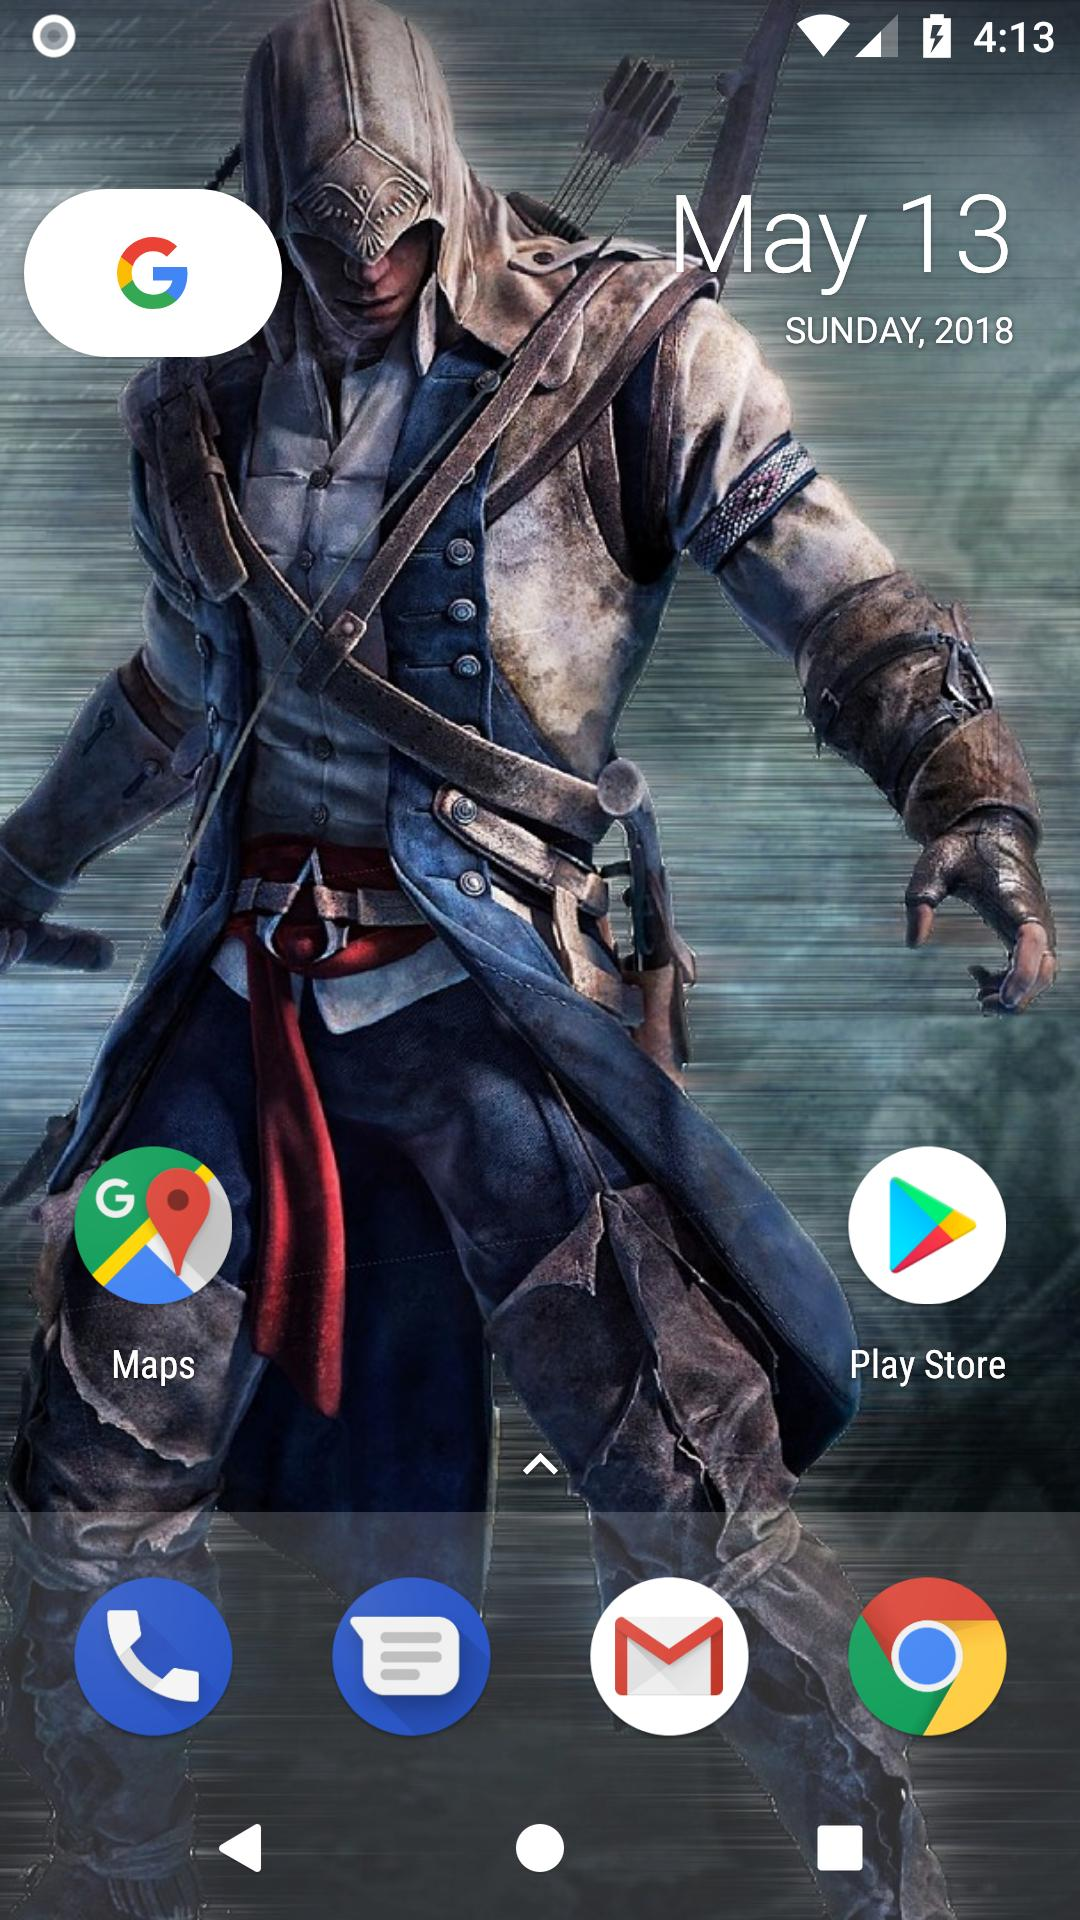 Assassins Creed Wallpaper 4k For Android Apk Download